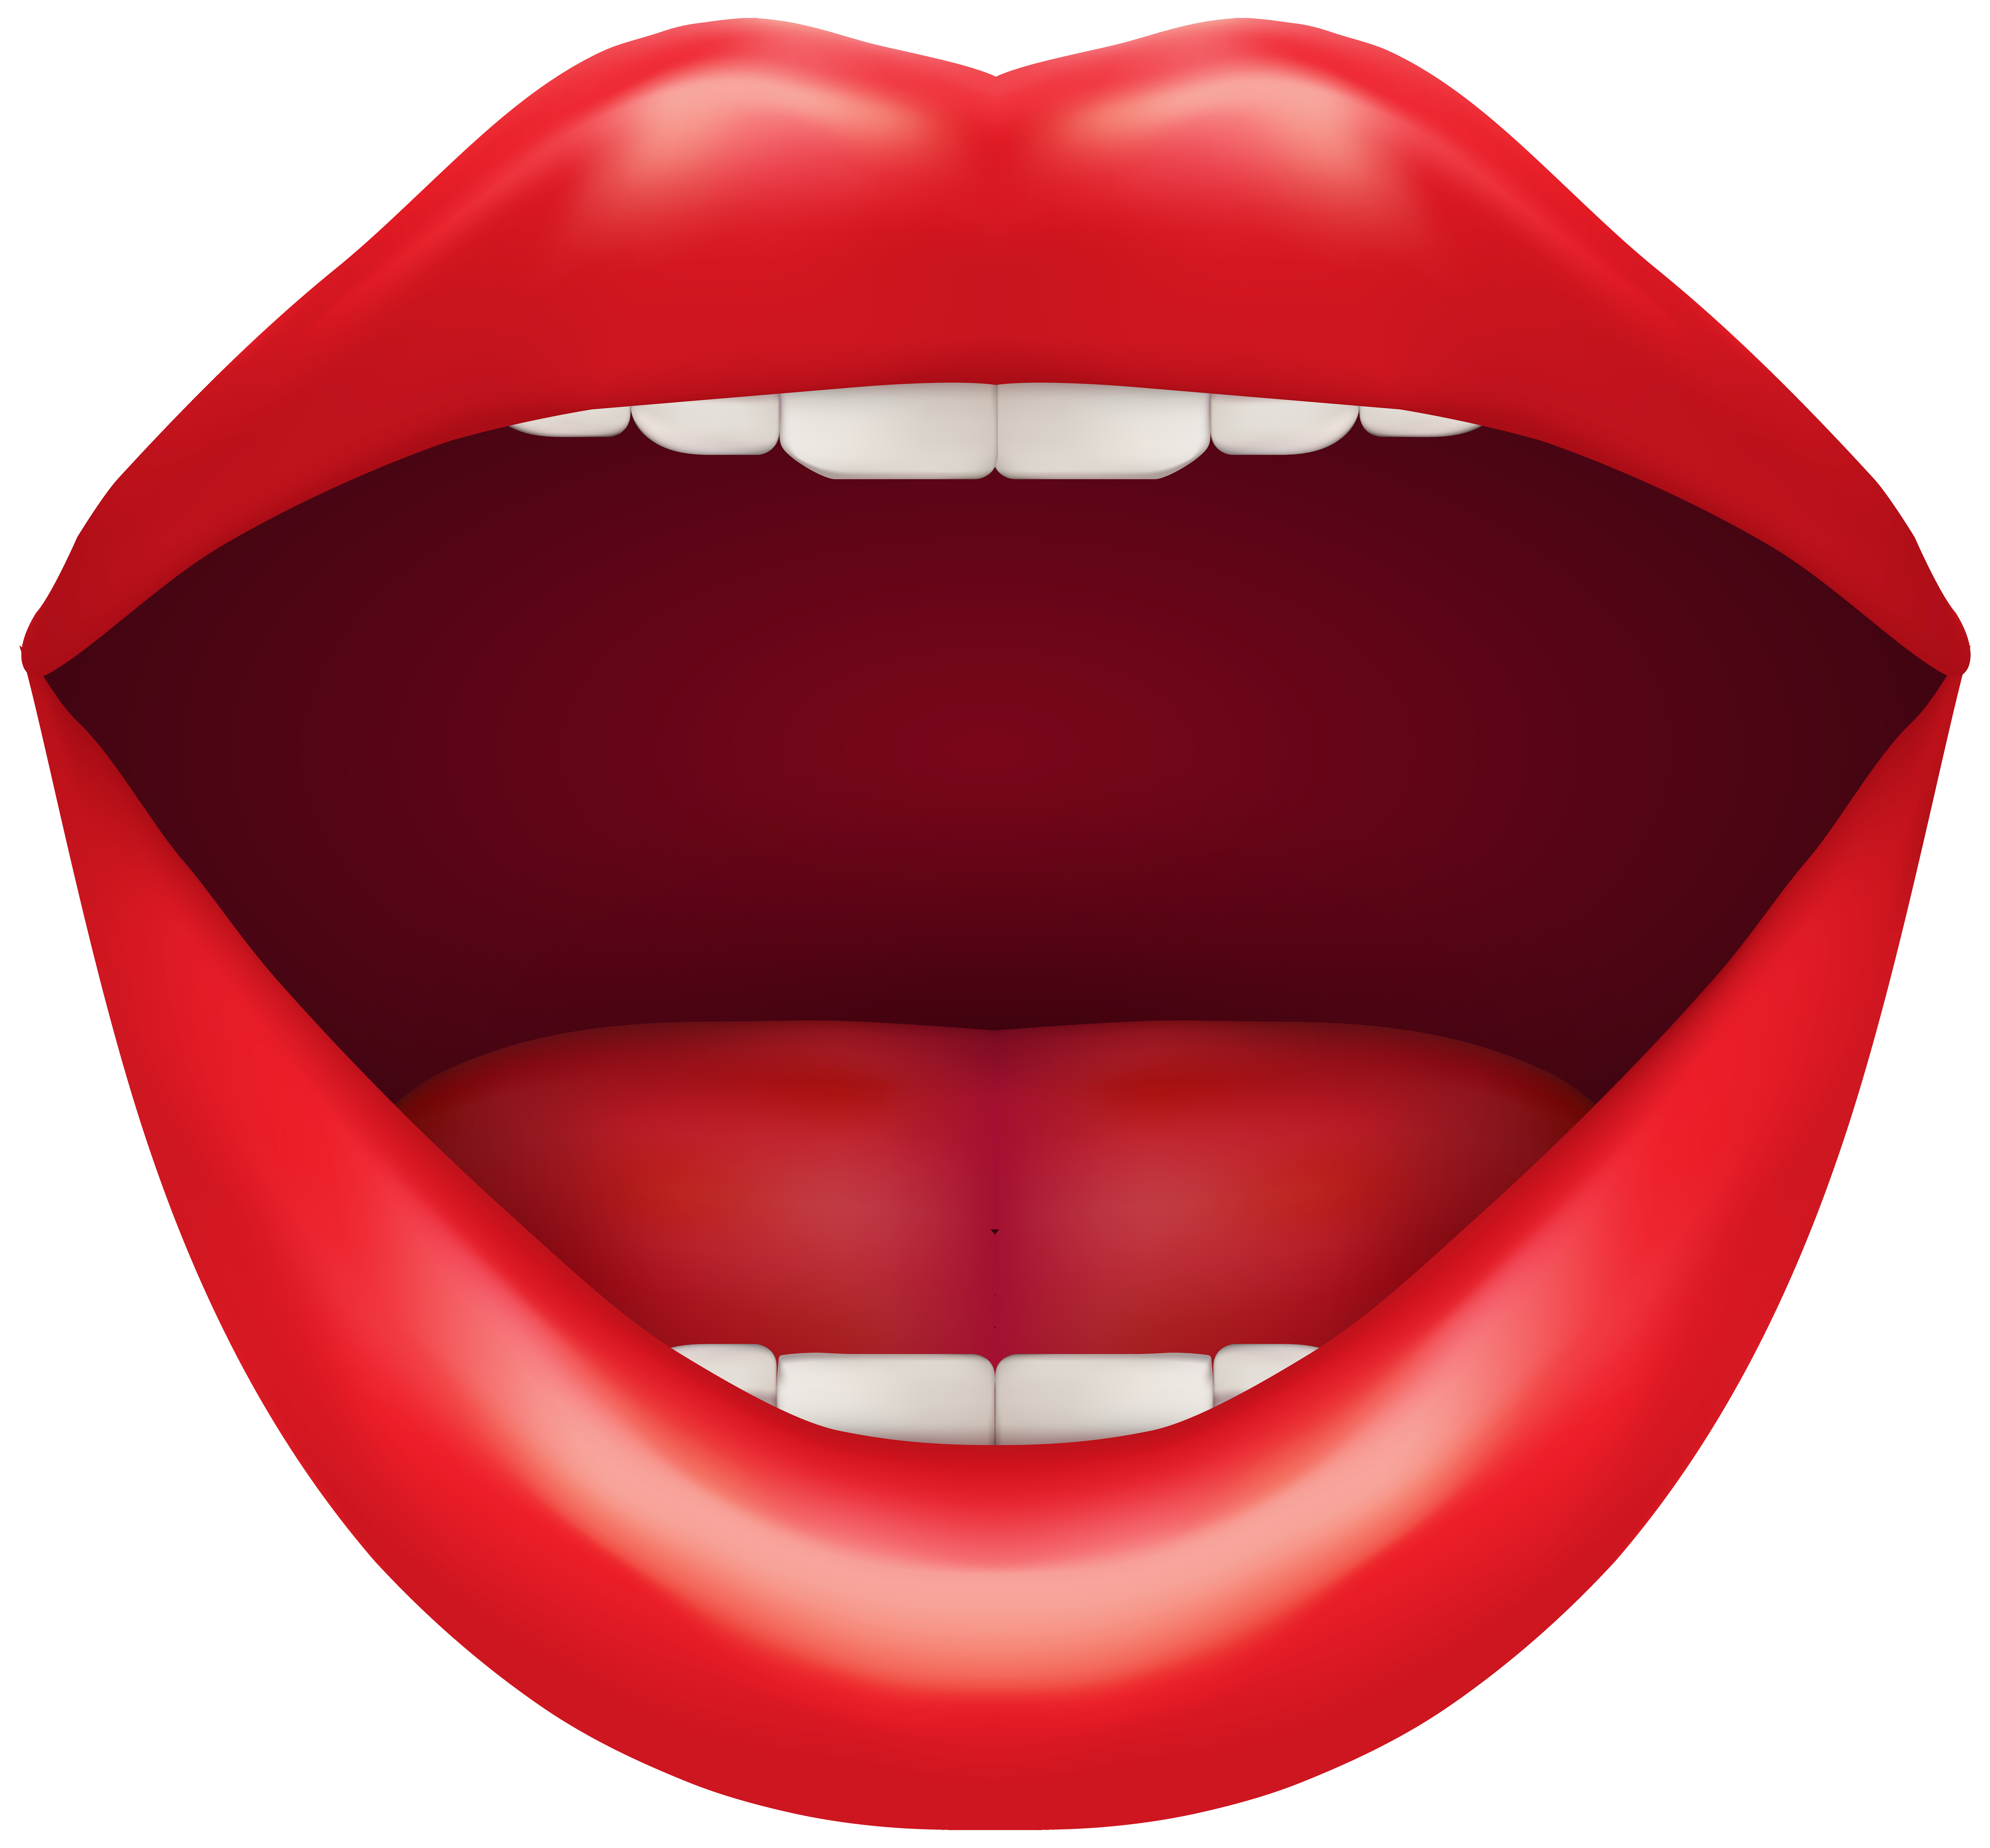 Taste clipart mouth open. Red png clip art